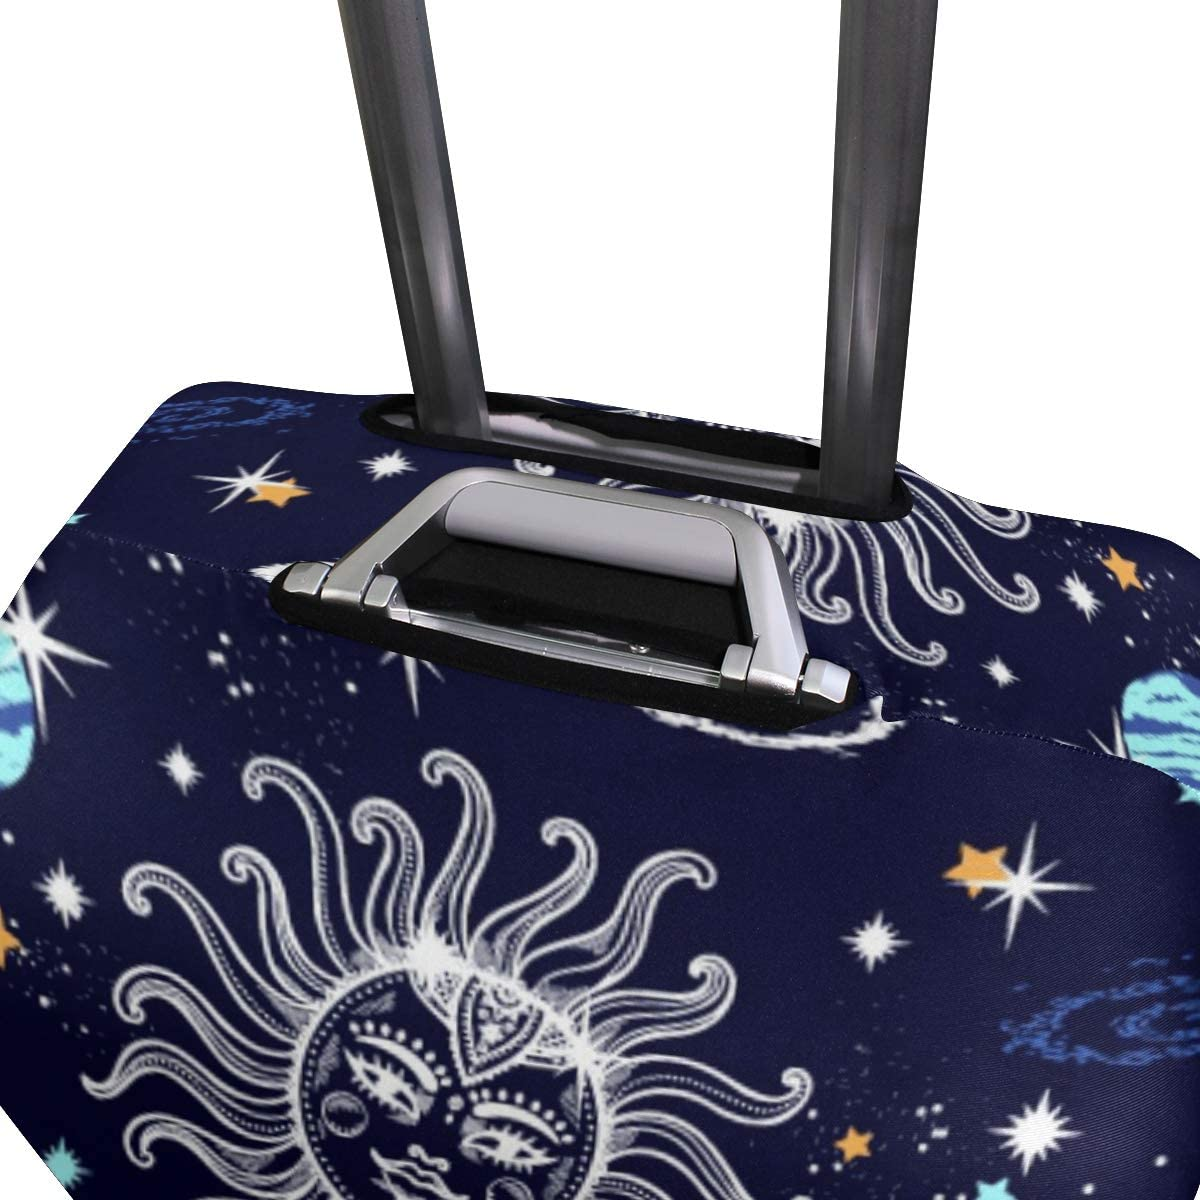 18//20//24//28//32 Inch Spandex Travel Luggage Cover Space Galaxy Constellation Seamless Pattern Print Fashion DIY Creative Design Anti-Scratch Stretchy Travel Suitcase Protector Baggage Covers